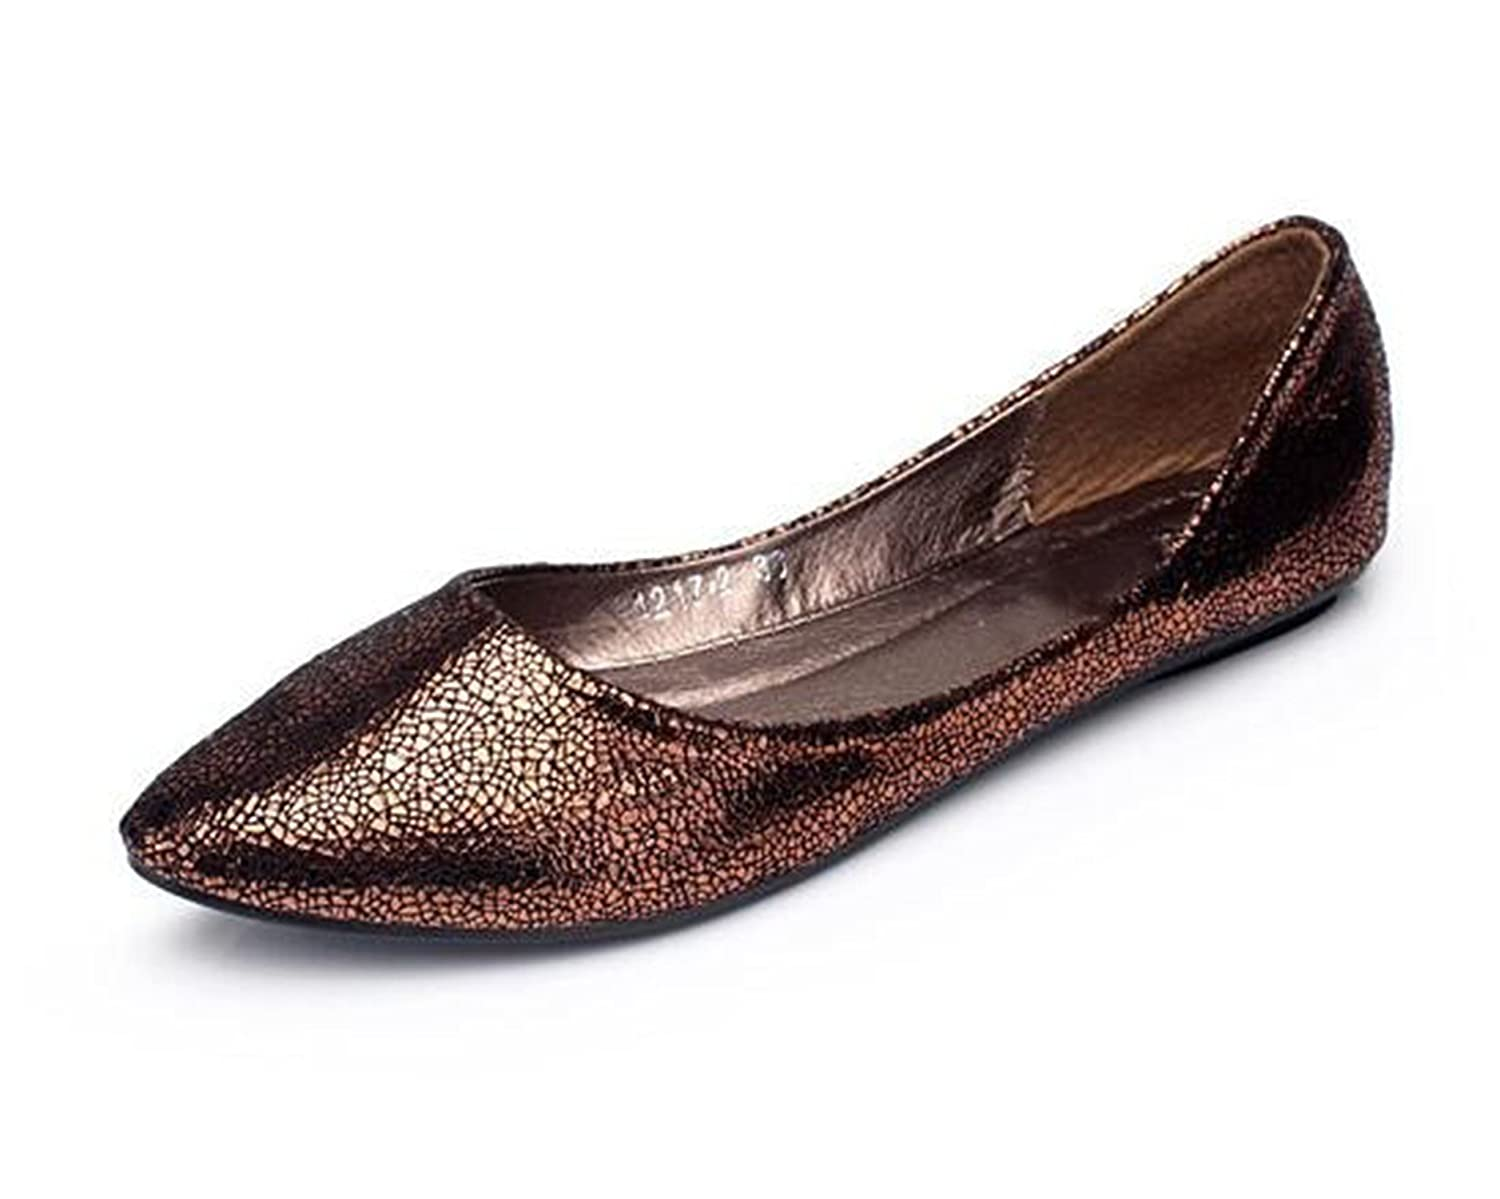 Aancy New New Europe and America Fan Flat Fashion Flats Pointy Toe Shoes Large Size Women 4 Colors